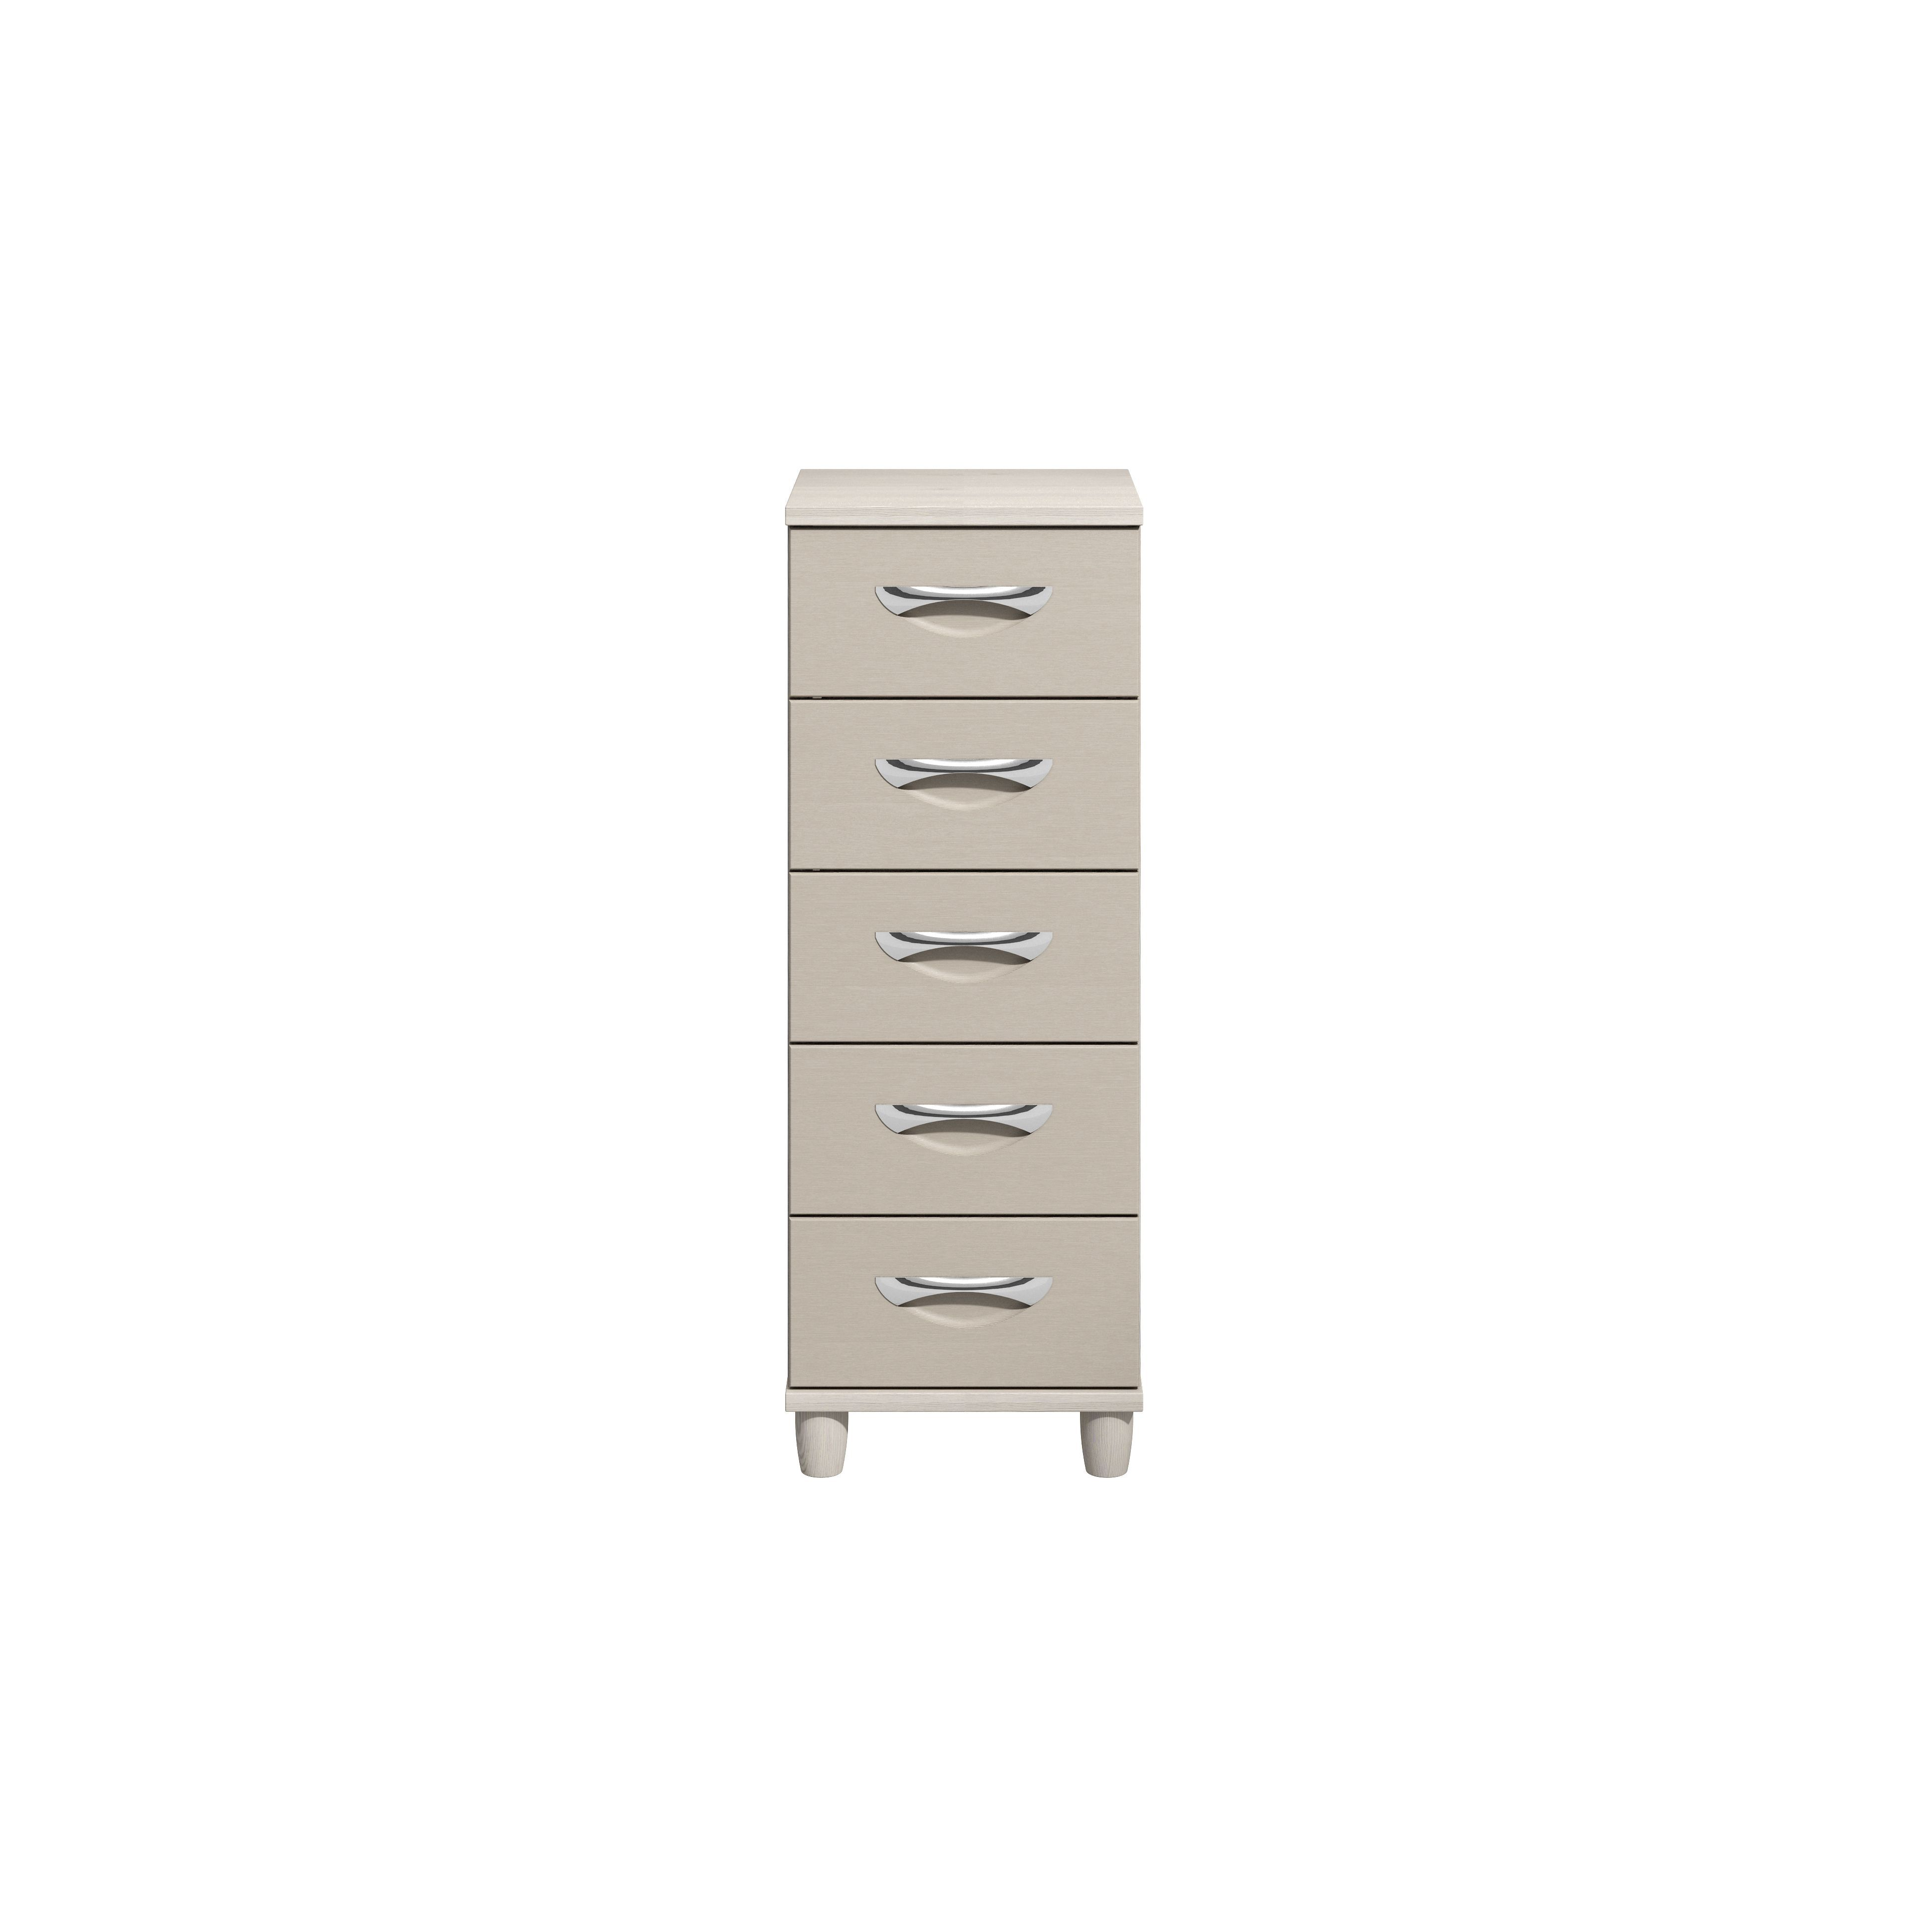 Consort Juno Cashmere Elm Effect Textured 5 Drawer Chest (h)1100mm (w)400mm (d)420mm